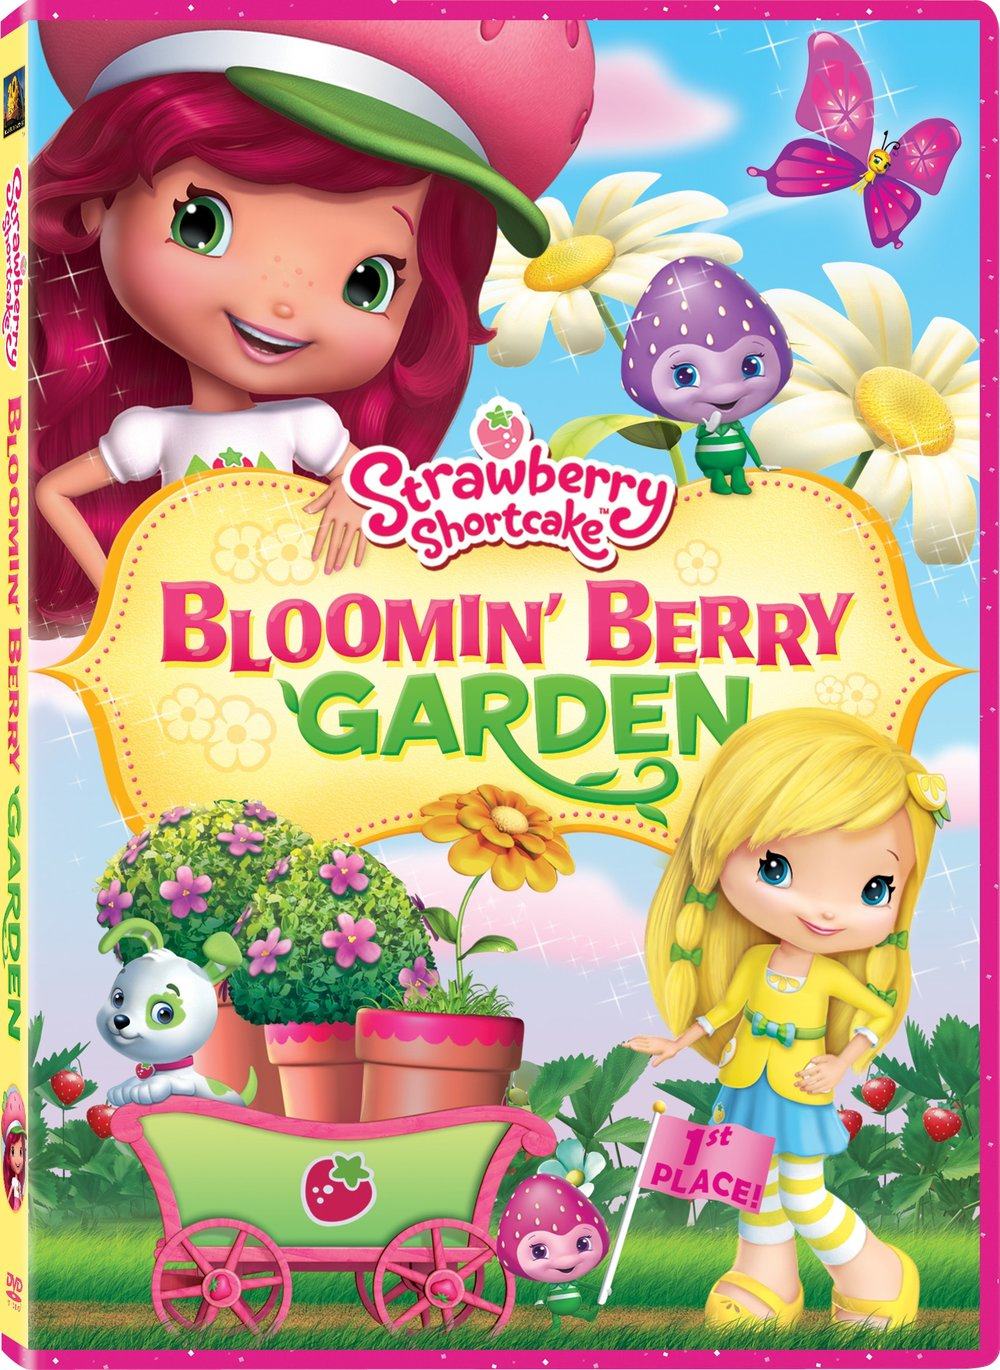 Strawberry and her friends are in for some great garden fun as they prepare for a very special jam-stomping contest. But when some magical sparkles make the Berrykins grow tall and the girls shrink down small, they discover that even when they're tiny, they can make a big difference. It's gardens, giggles and girl power galore in these berry exciting adventures!